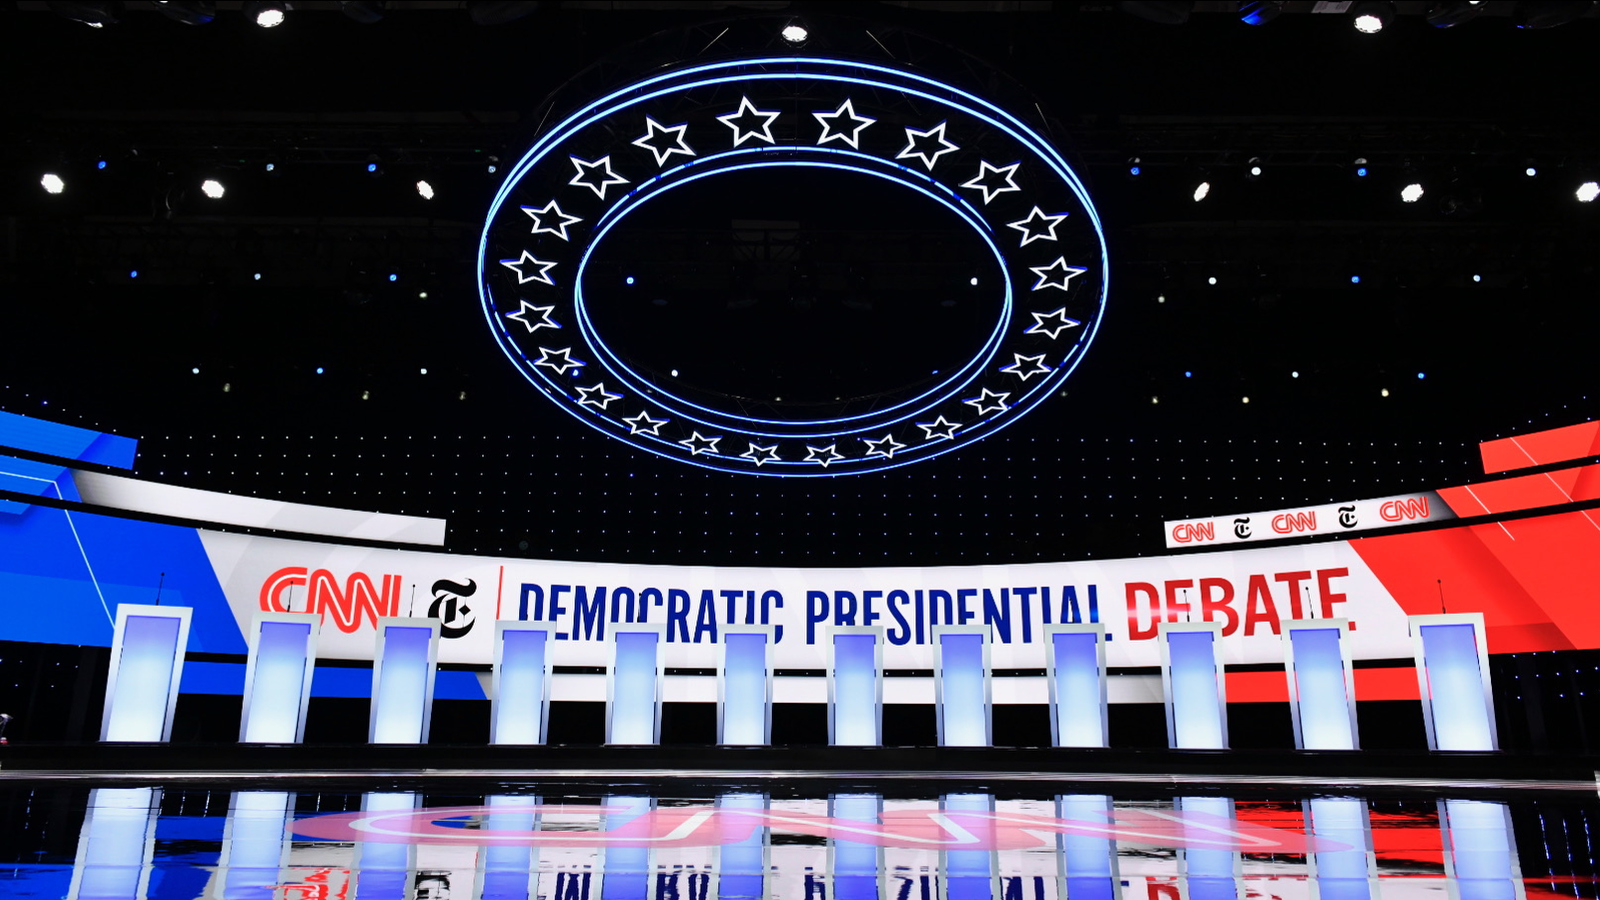 ncs_CNN-Dem-Debate-Ohio_029